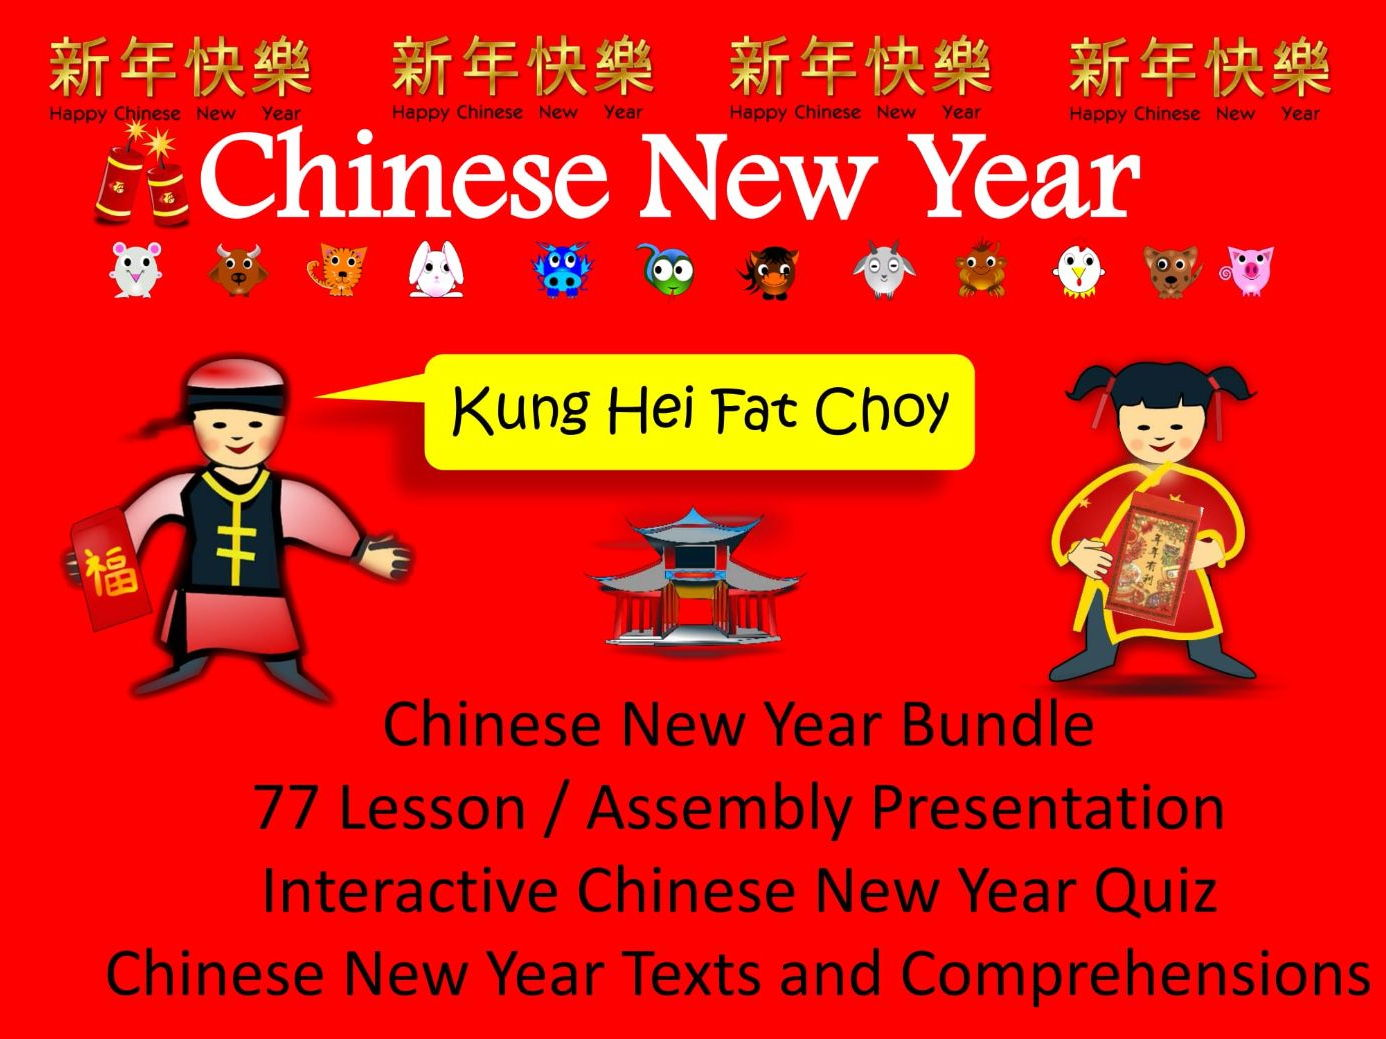 Chinese New Year Bundle - Presentation, Quiz, Texts and Comprehensions